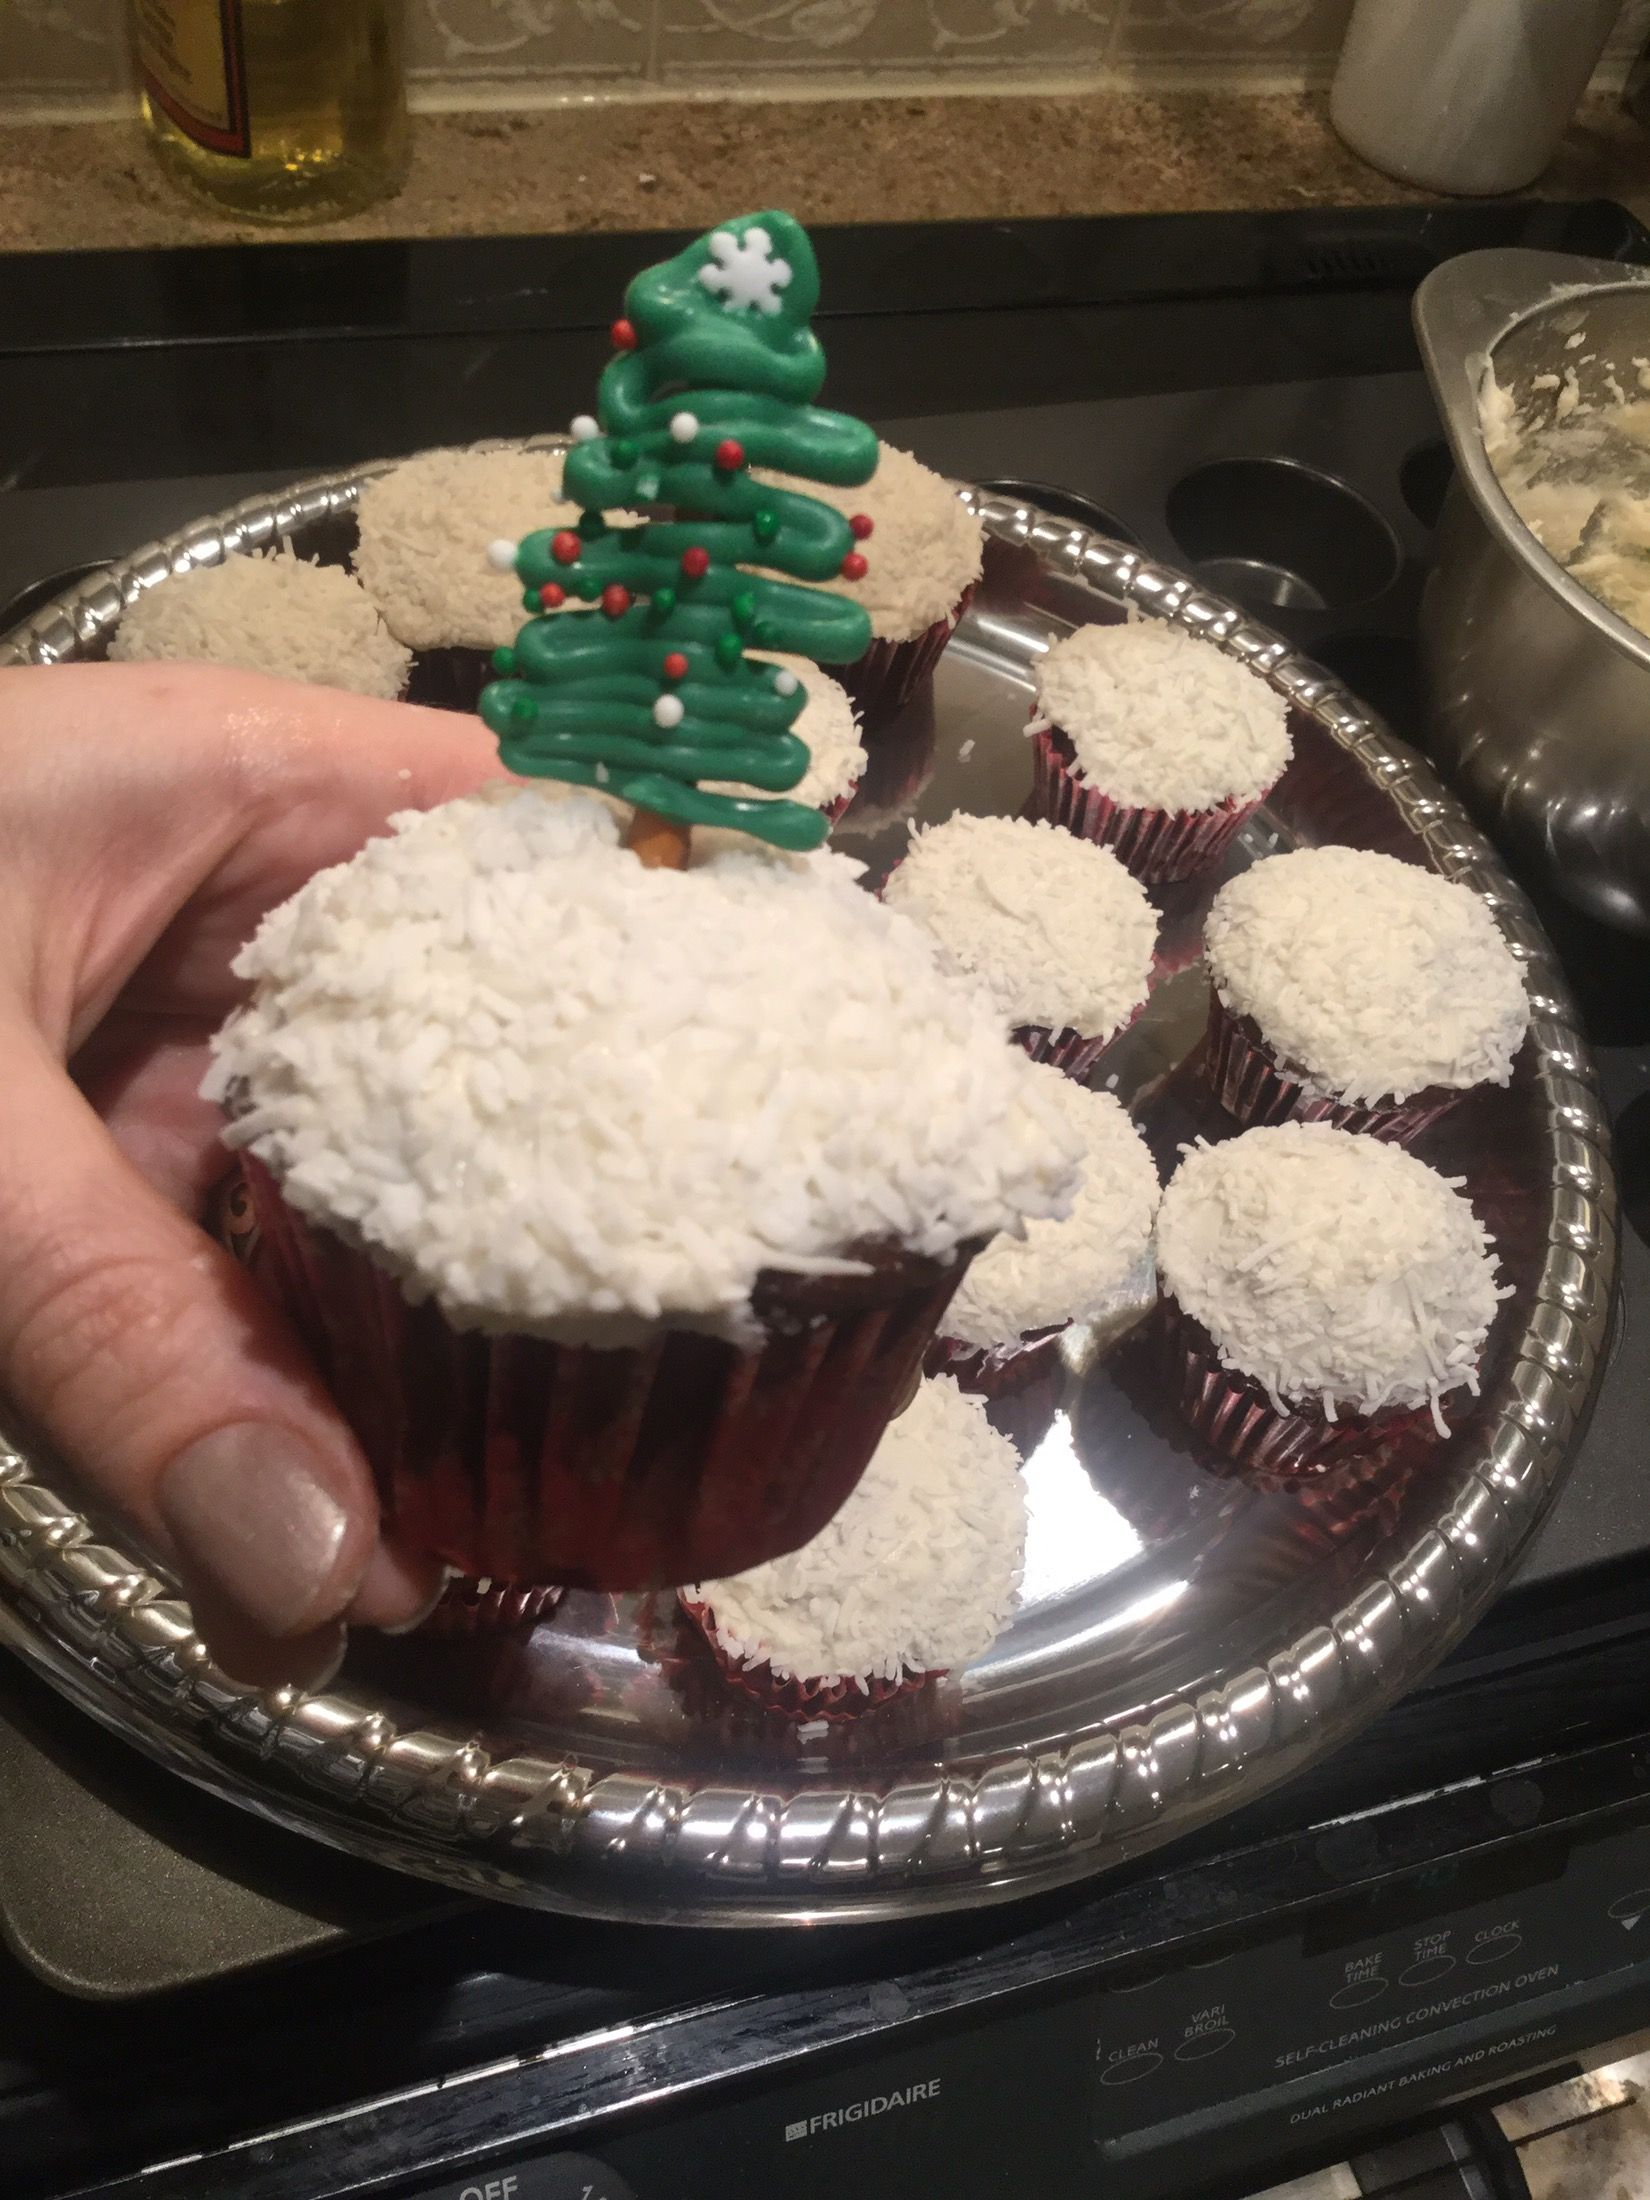 Pin By K Wrens On Cakes Cupcakes Muffins Xmas Food Cupcakes